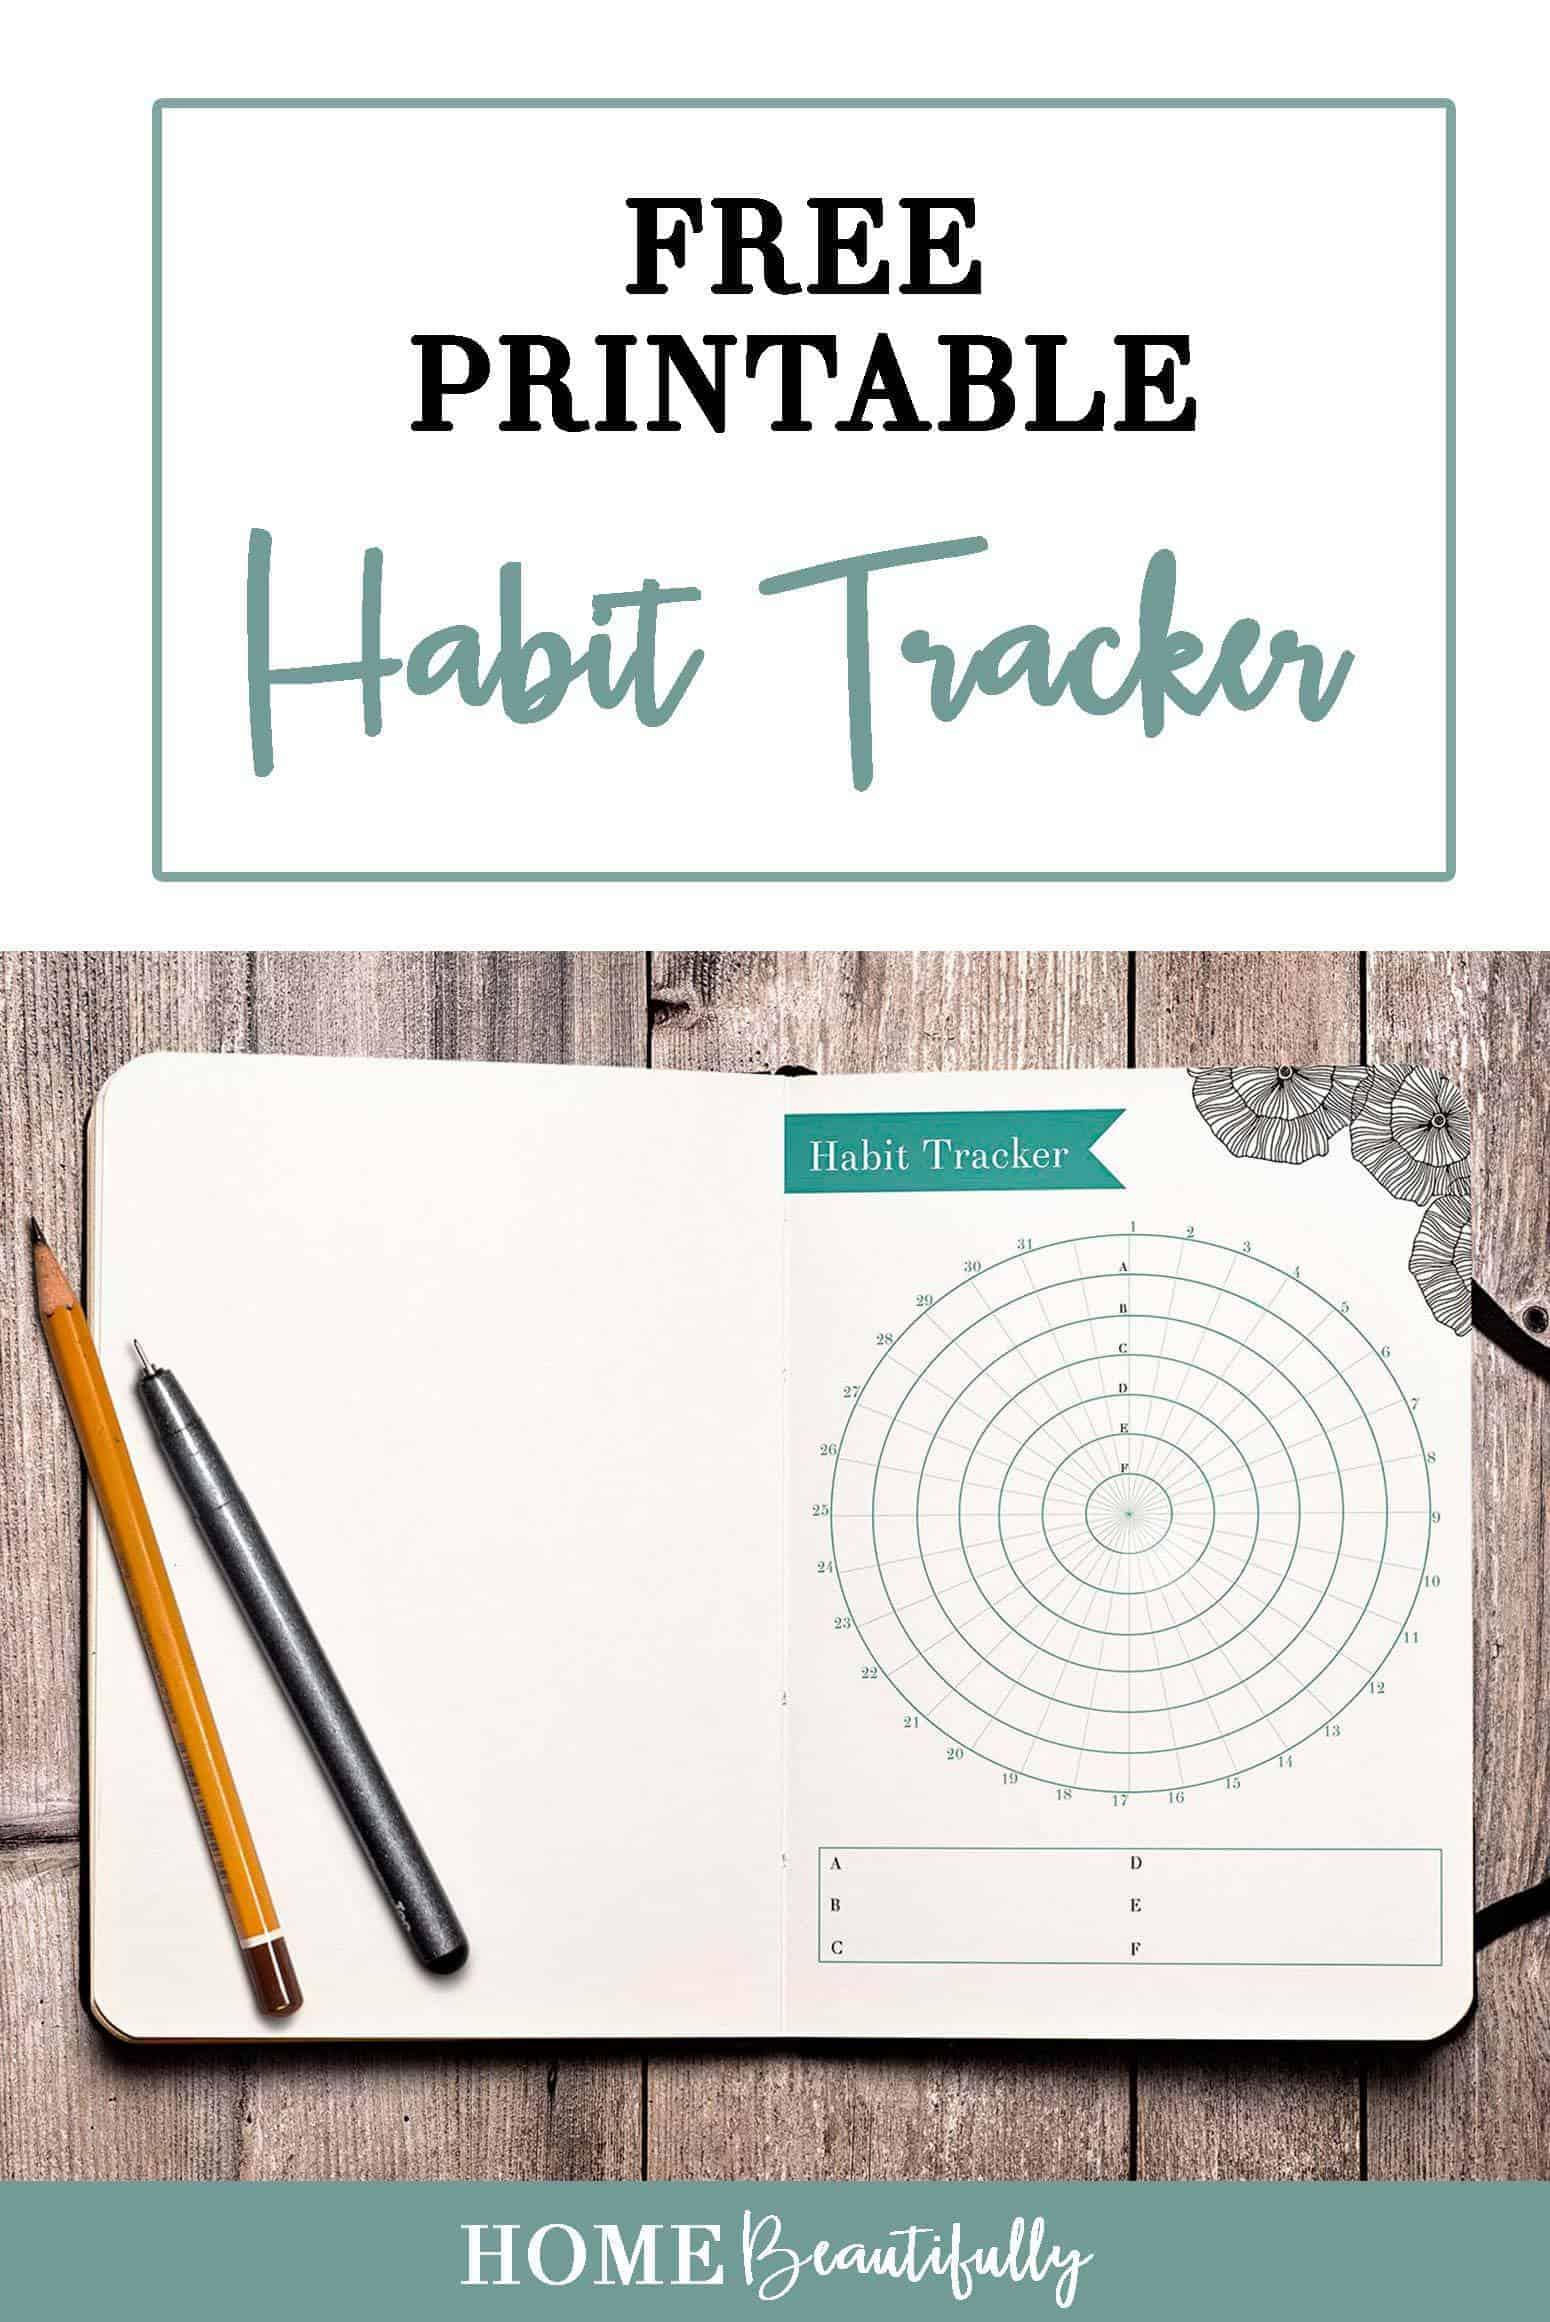 picture regarding Habit Tracker Printable Free referred to as Printable Behavior Tracker Acquire Terrific Practices Quickly with